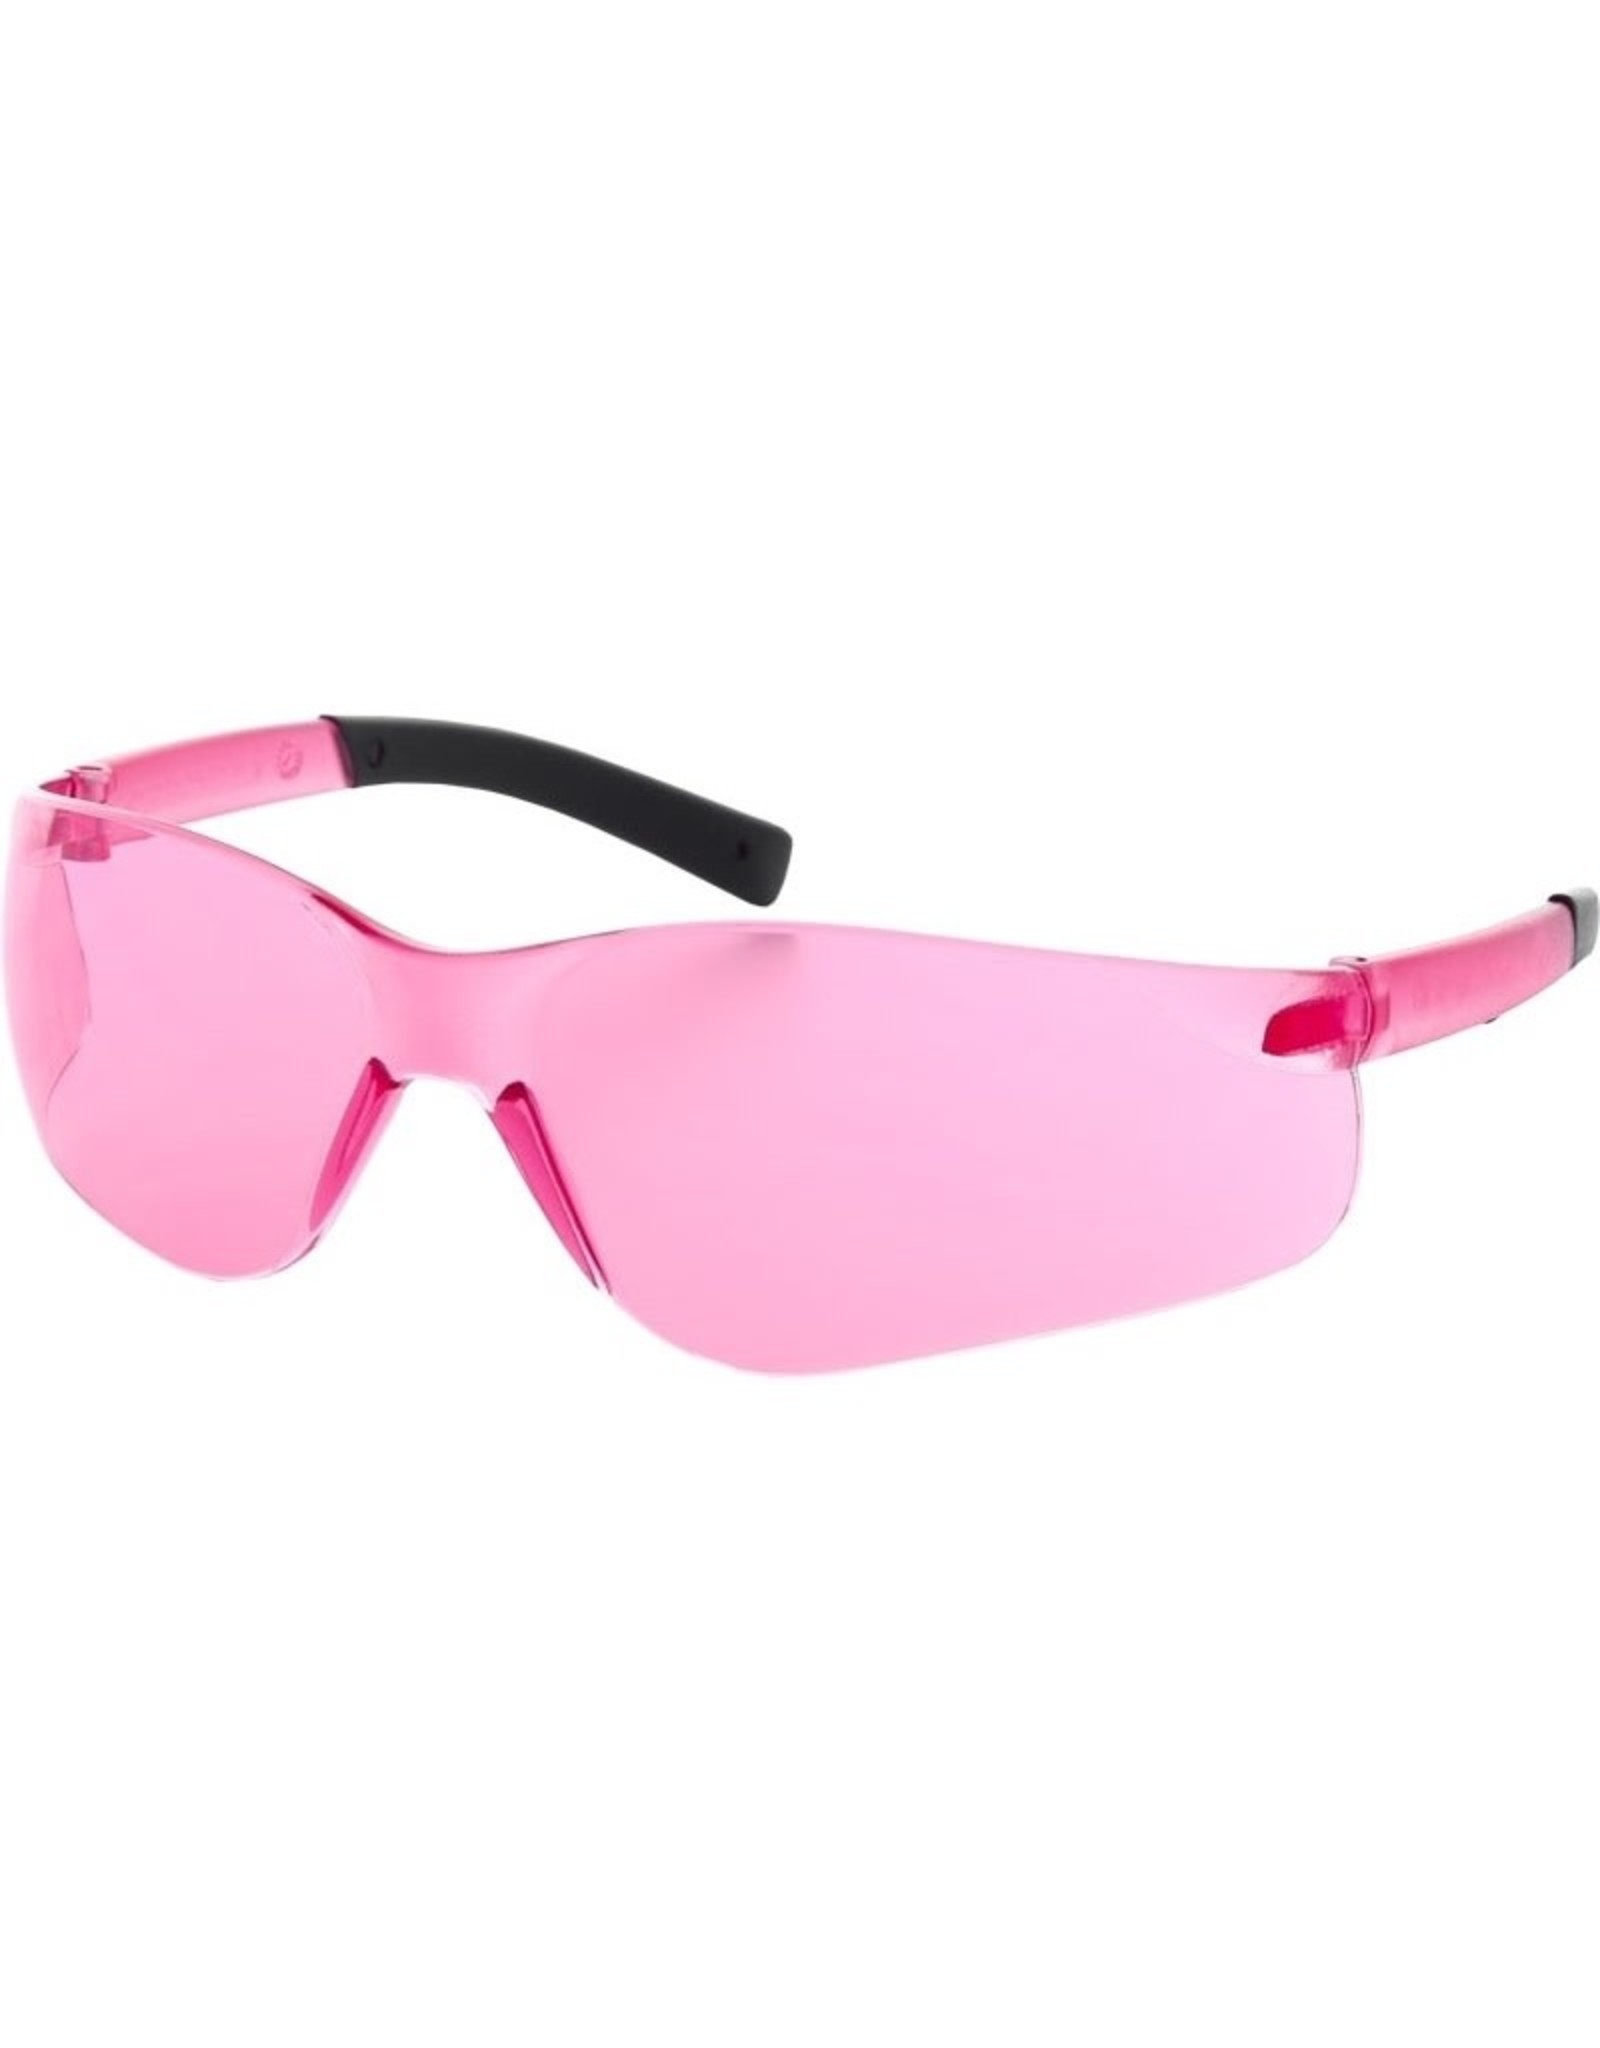 Majestic Glove Hailstorm SML Safety Glasses with Vermillion/Pink Lens